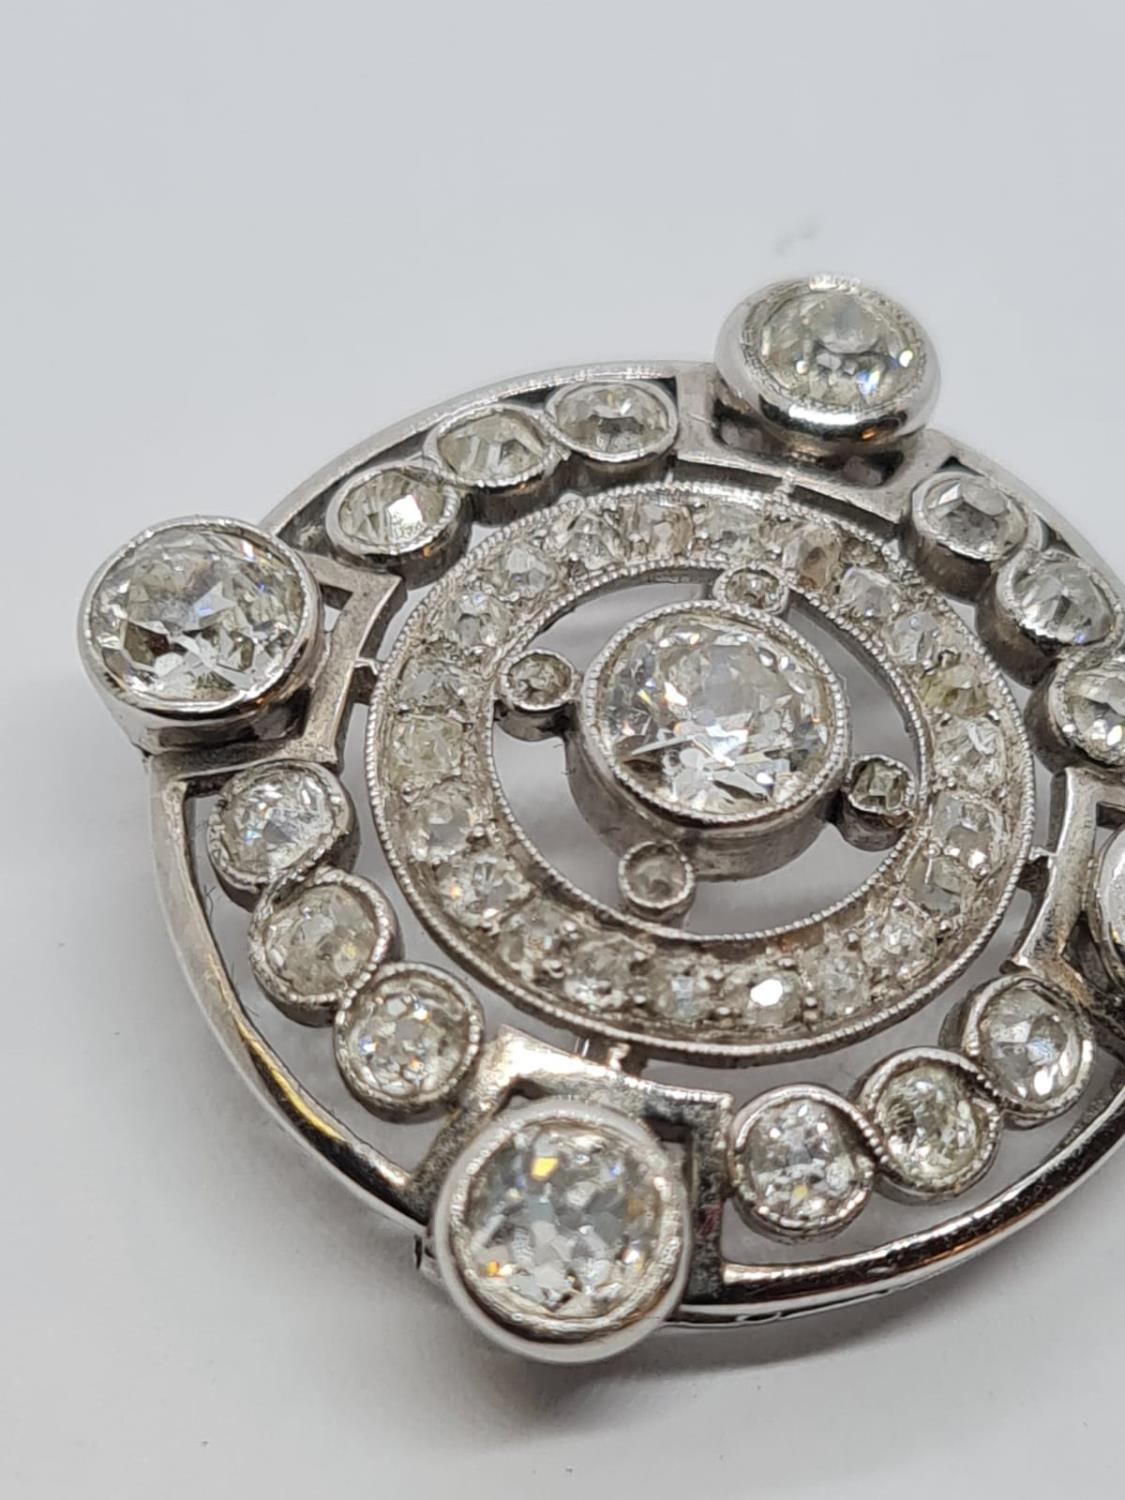 Vintage 18ct Gold and Diamond BROOCH having over 3 ct of fine quality of Diamonds. 8.3g 2.5 cm - Image 3 of 4